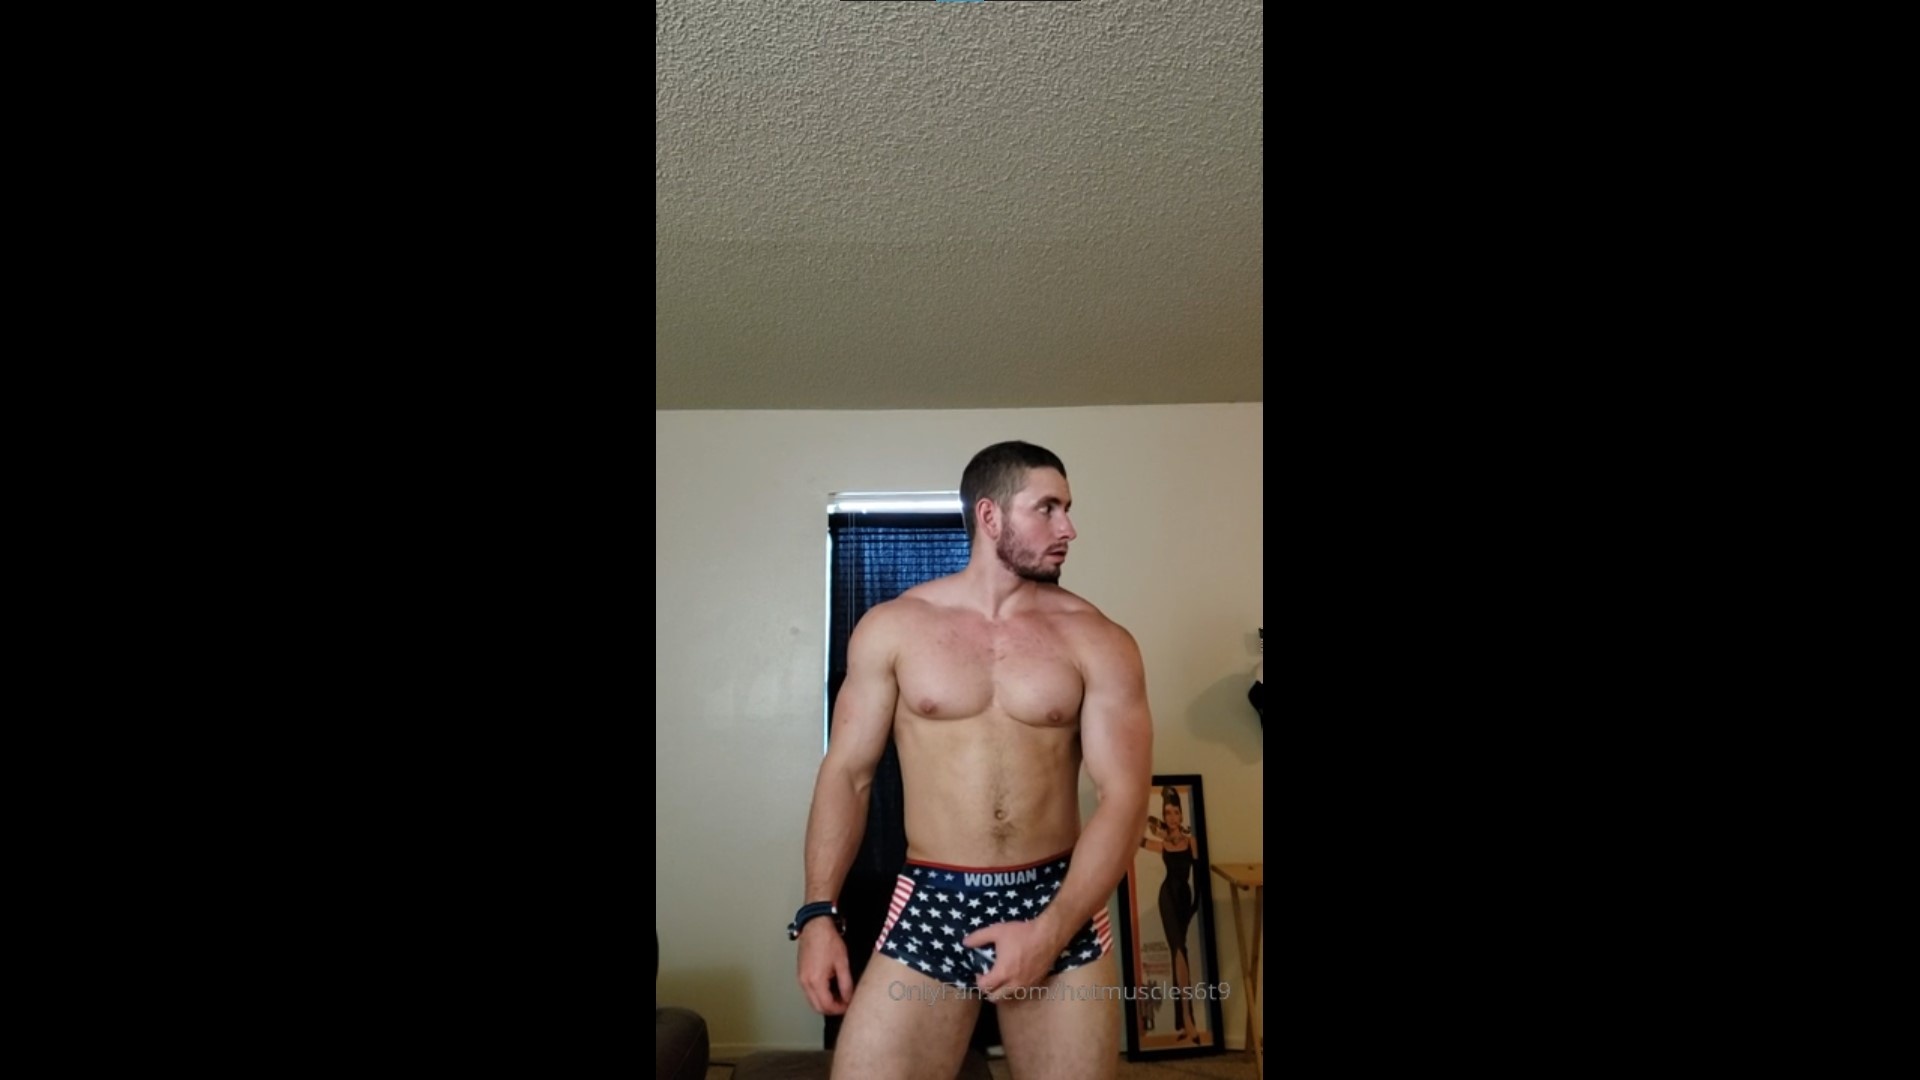 Flexing in my underwear - Hotmuscles6t9